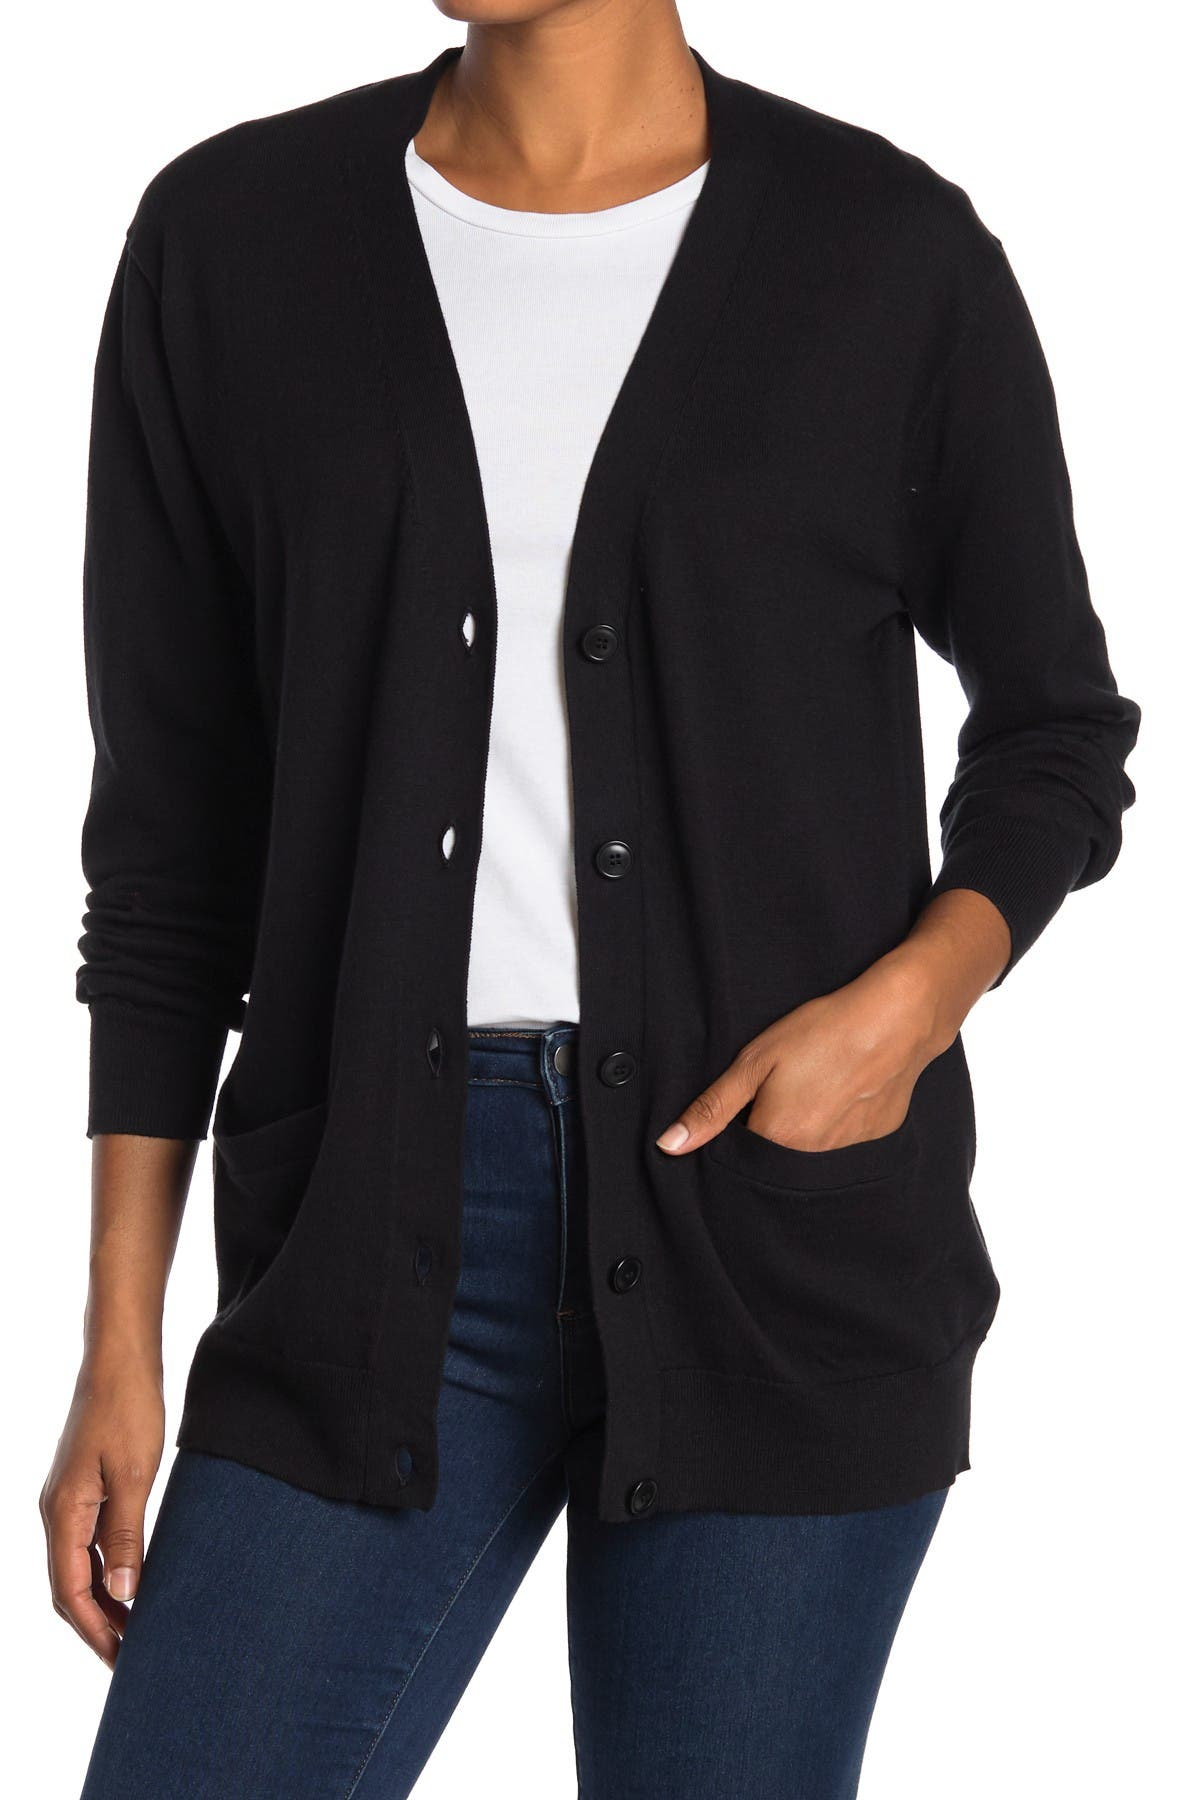 Image of J. Crew Rack Solid Boyfriend Cardigan